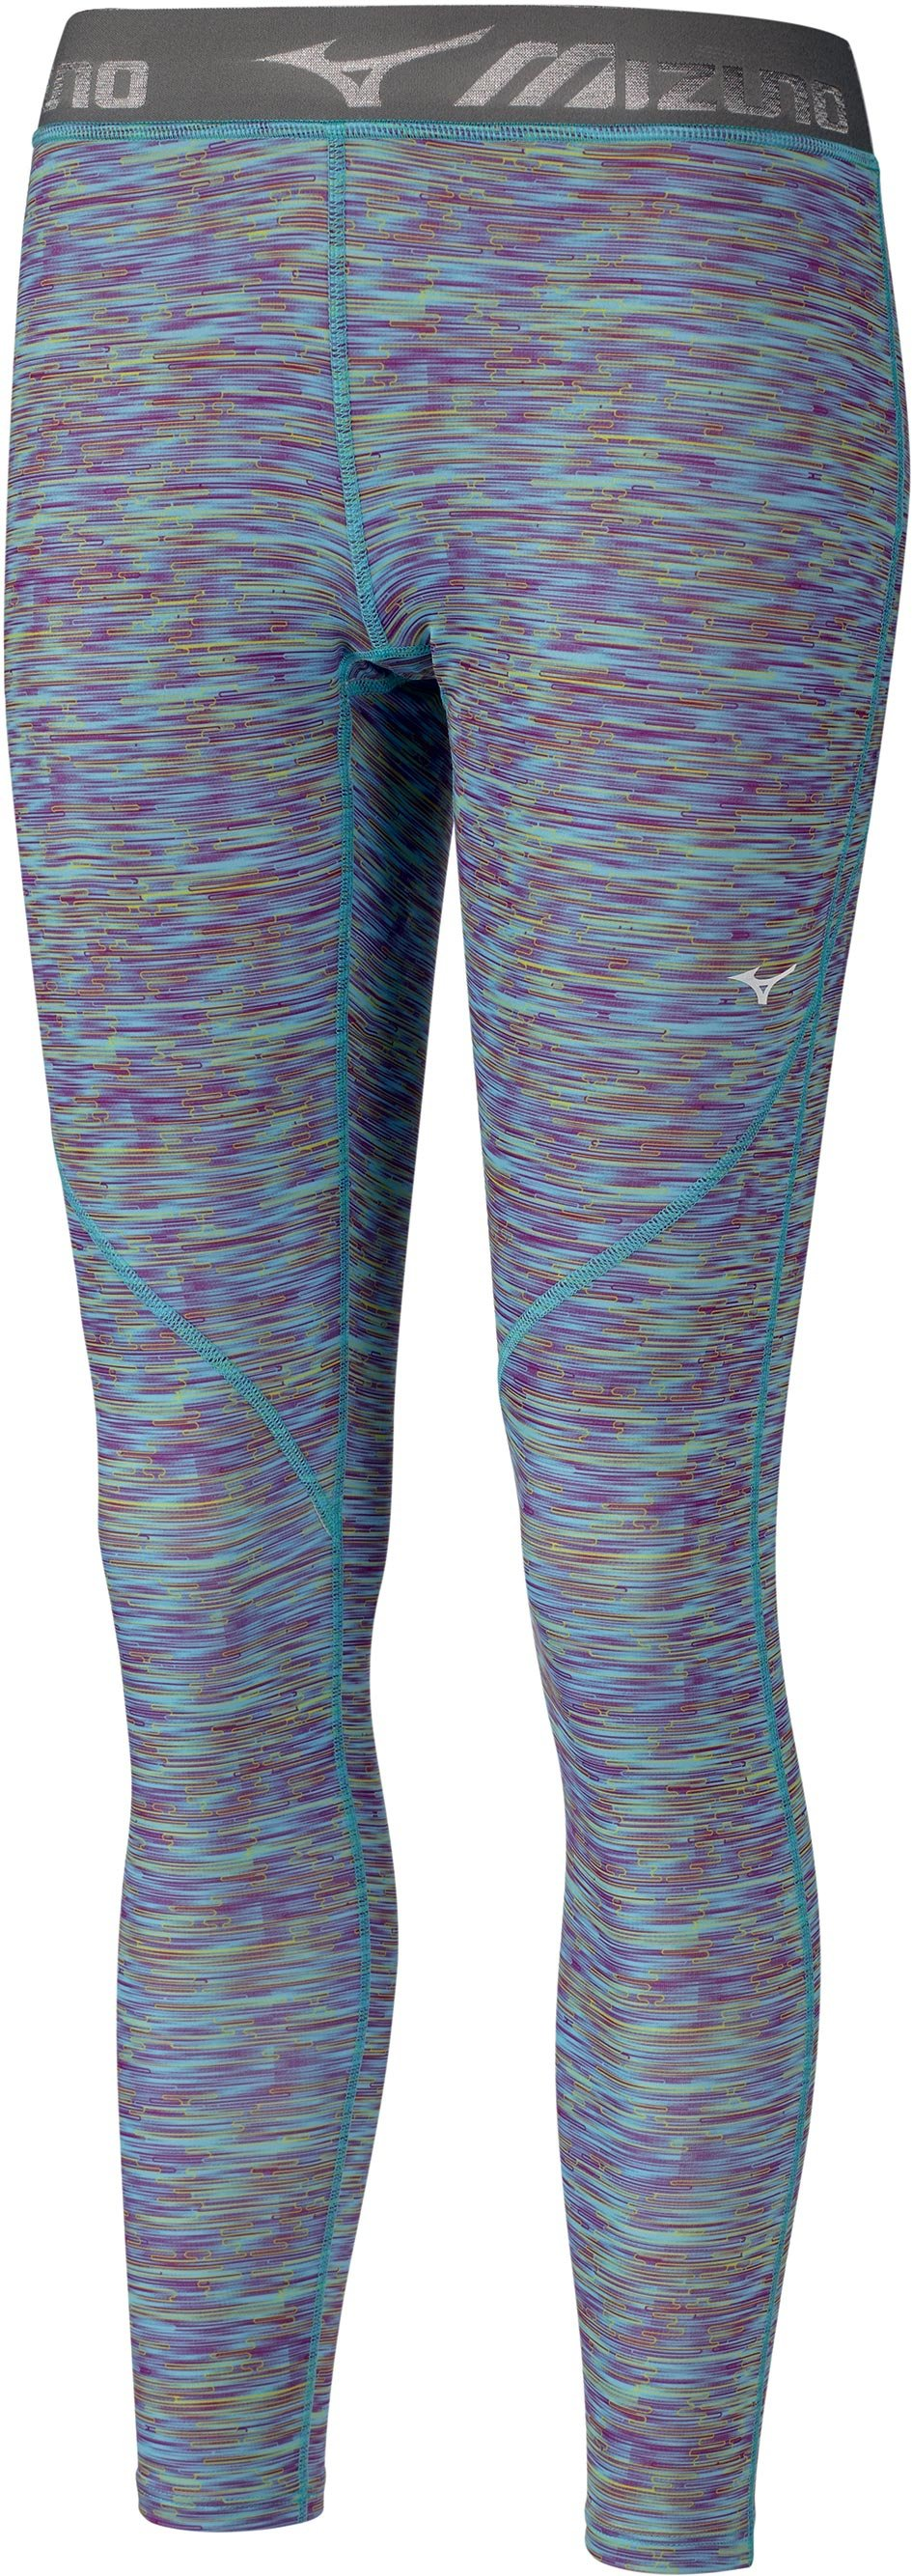 Mizuno Impulse Printed Long Tight S